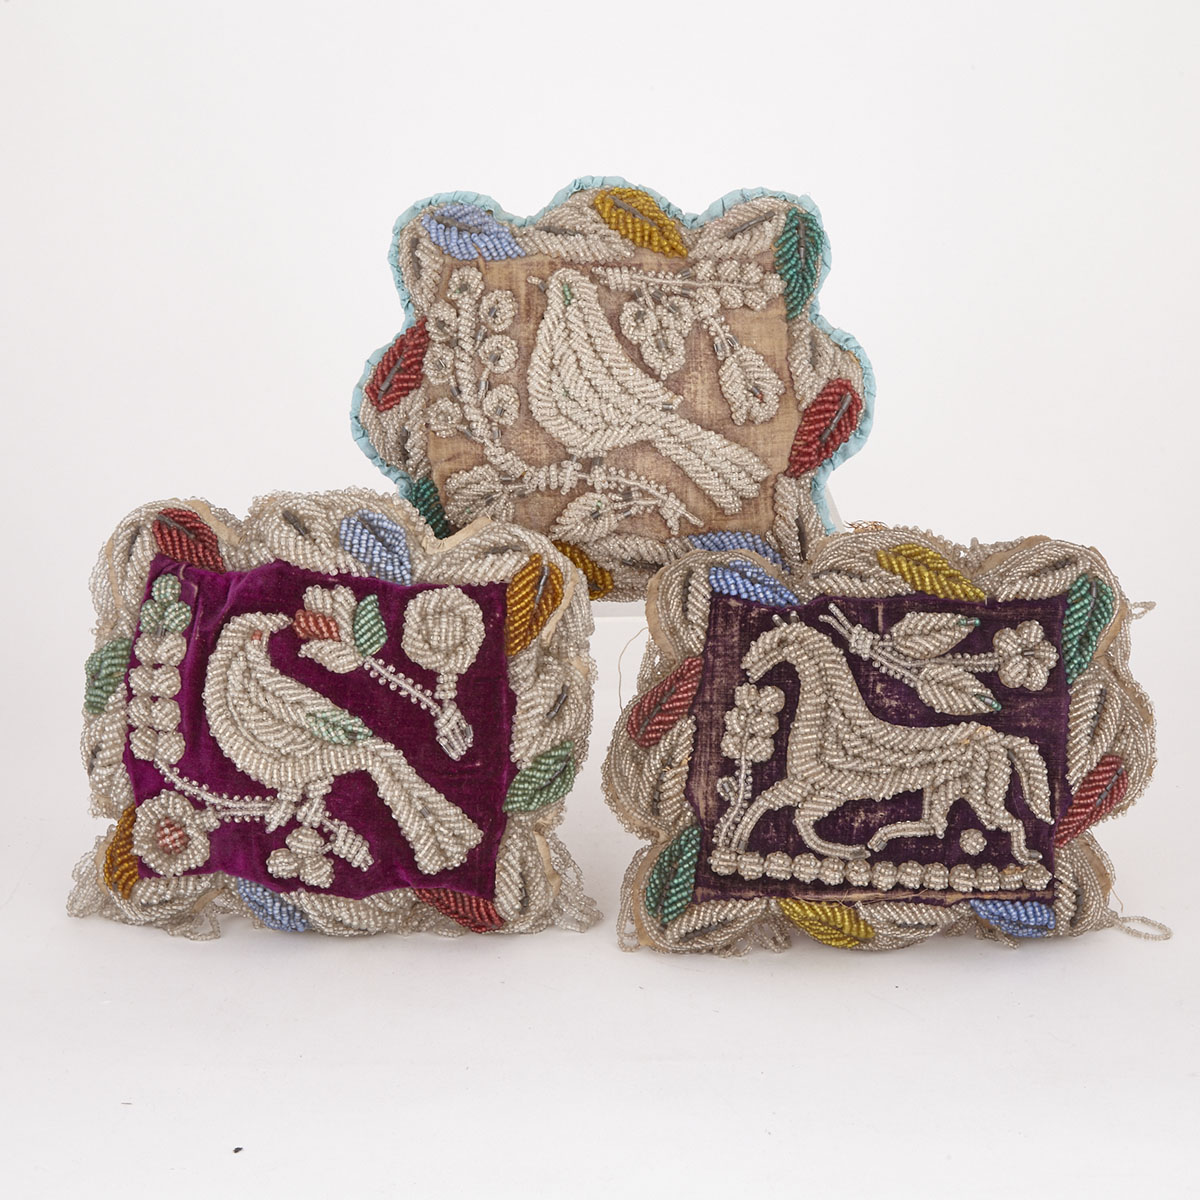 Three Large Iroquois Beaded Pin Cushion Whimsies, late 19th/early 20th century